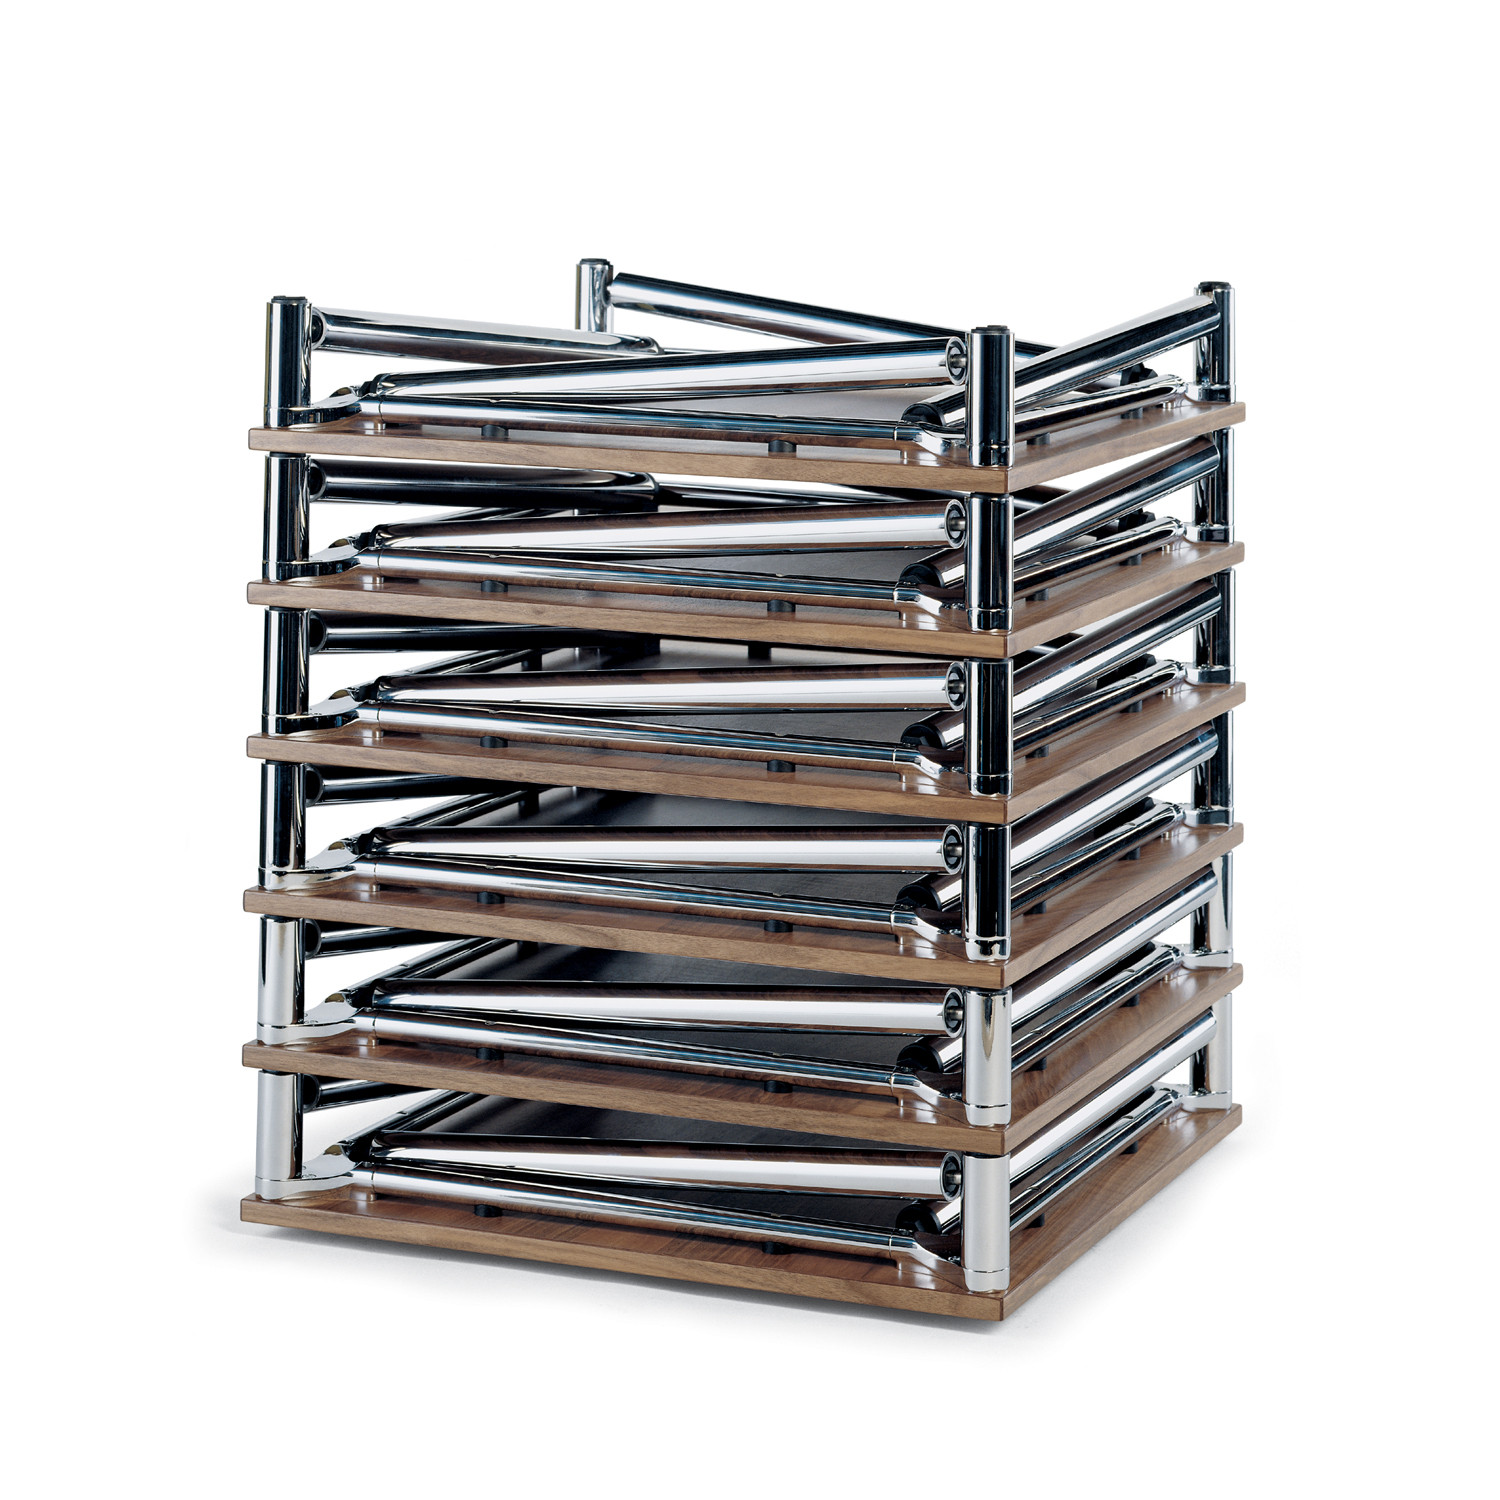 Talk About Folding Tables